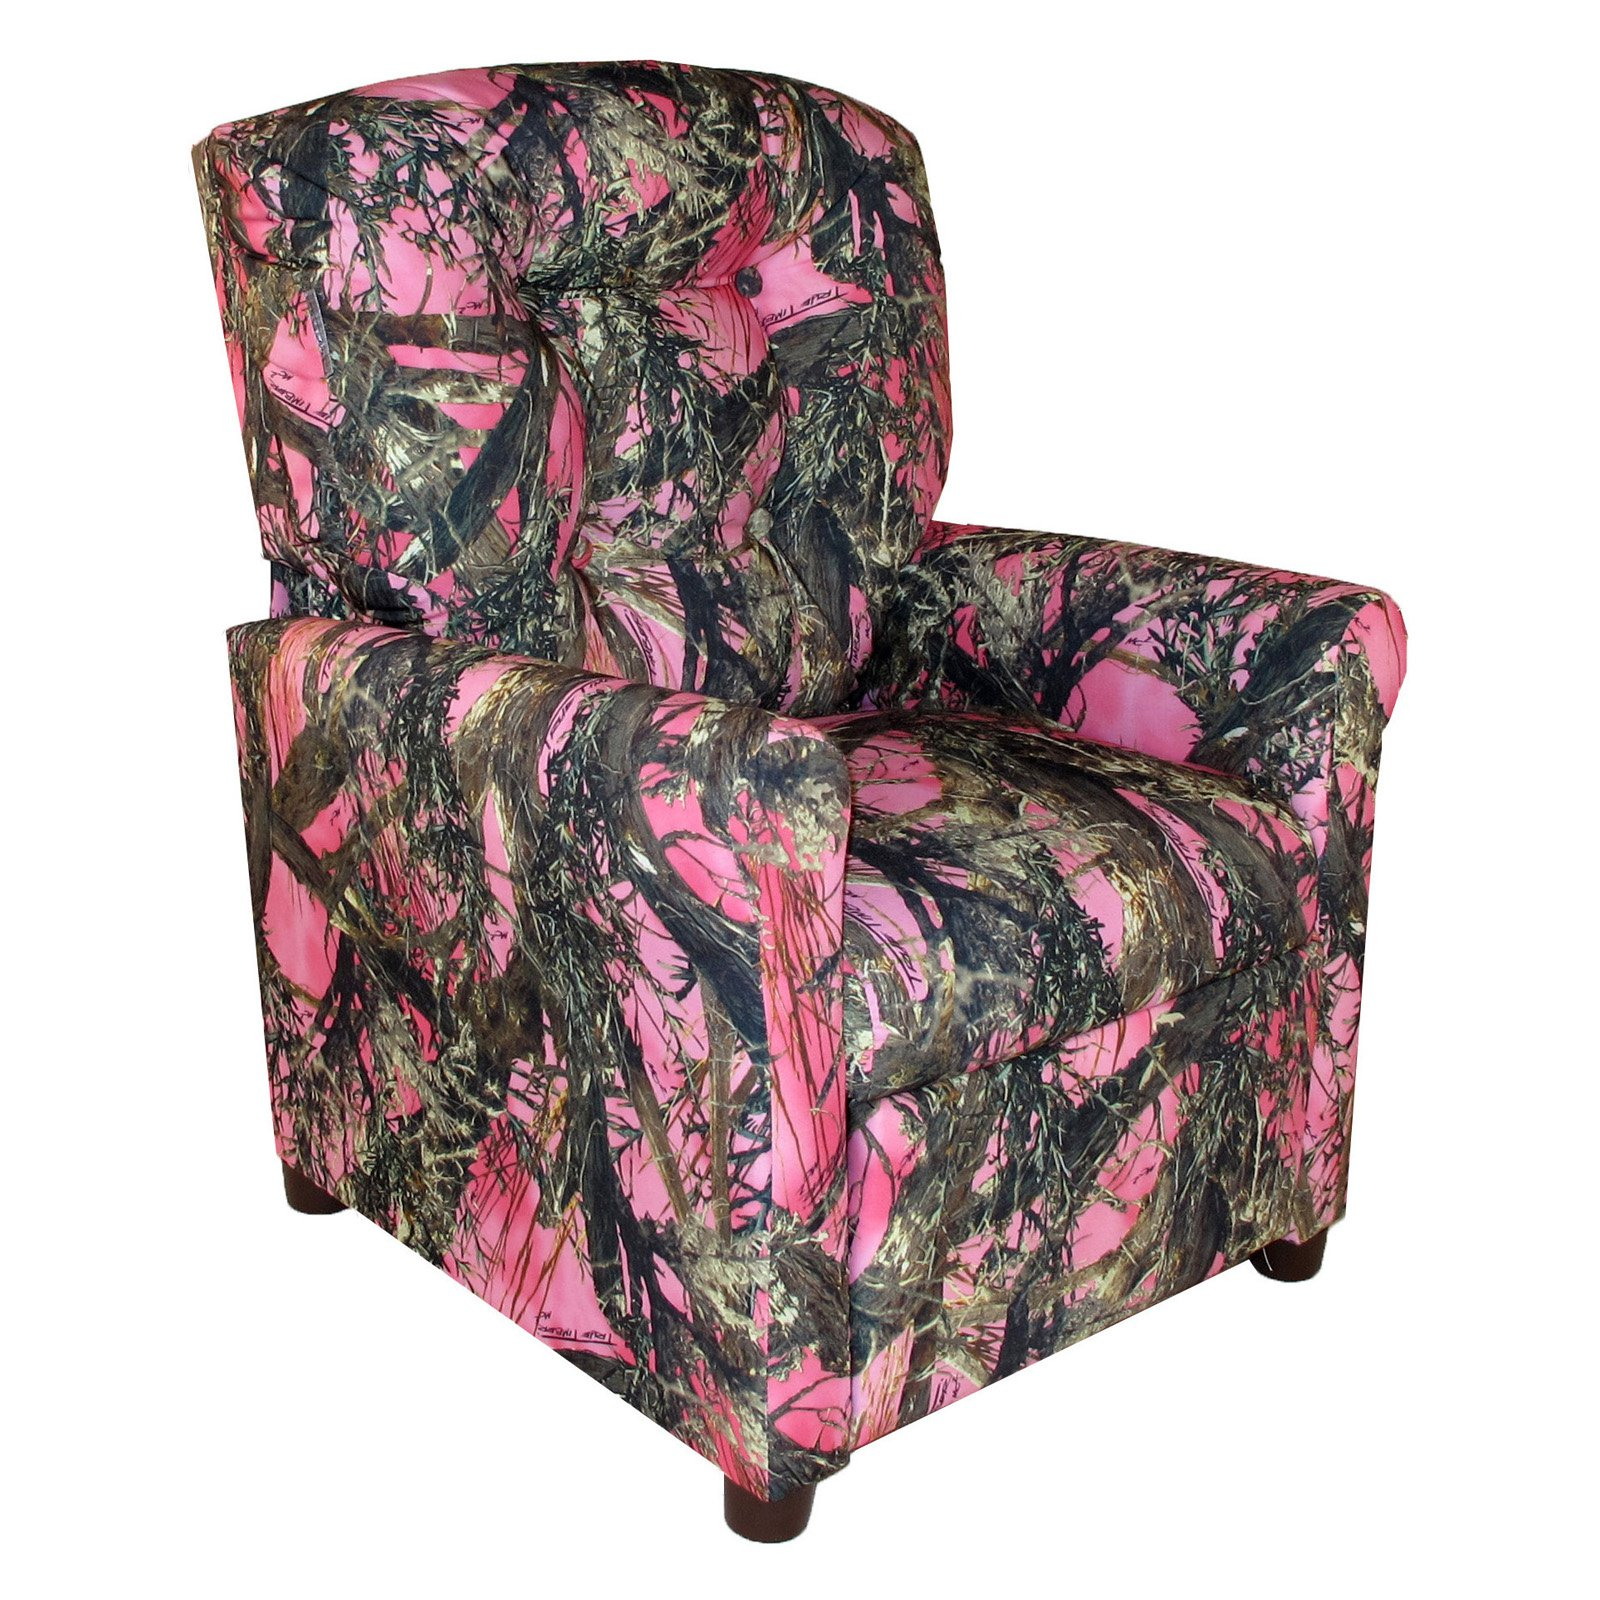 Dozydotes 4-Button Kid Recliner - Camouflage Pink with True Timber Fabric